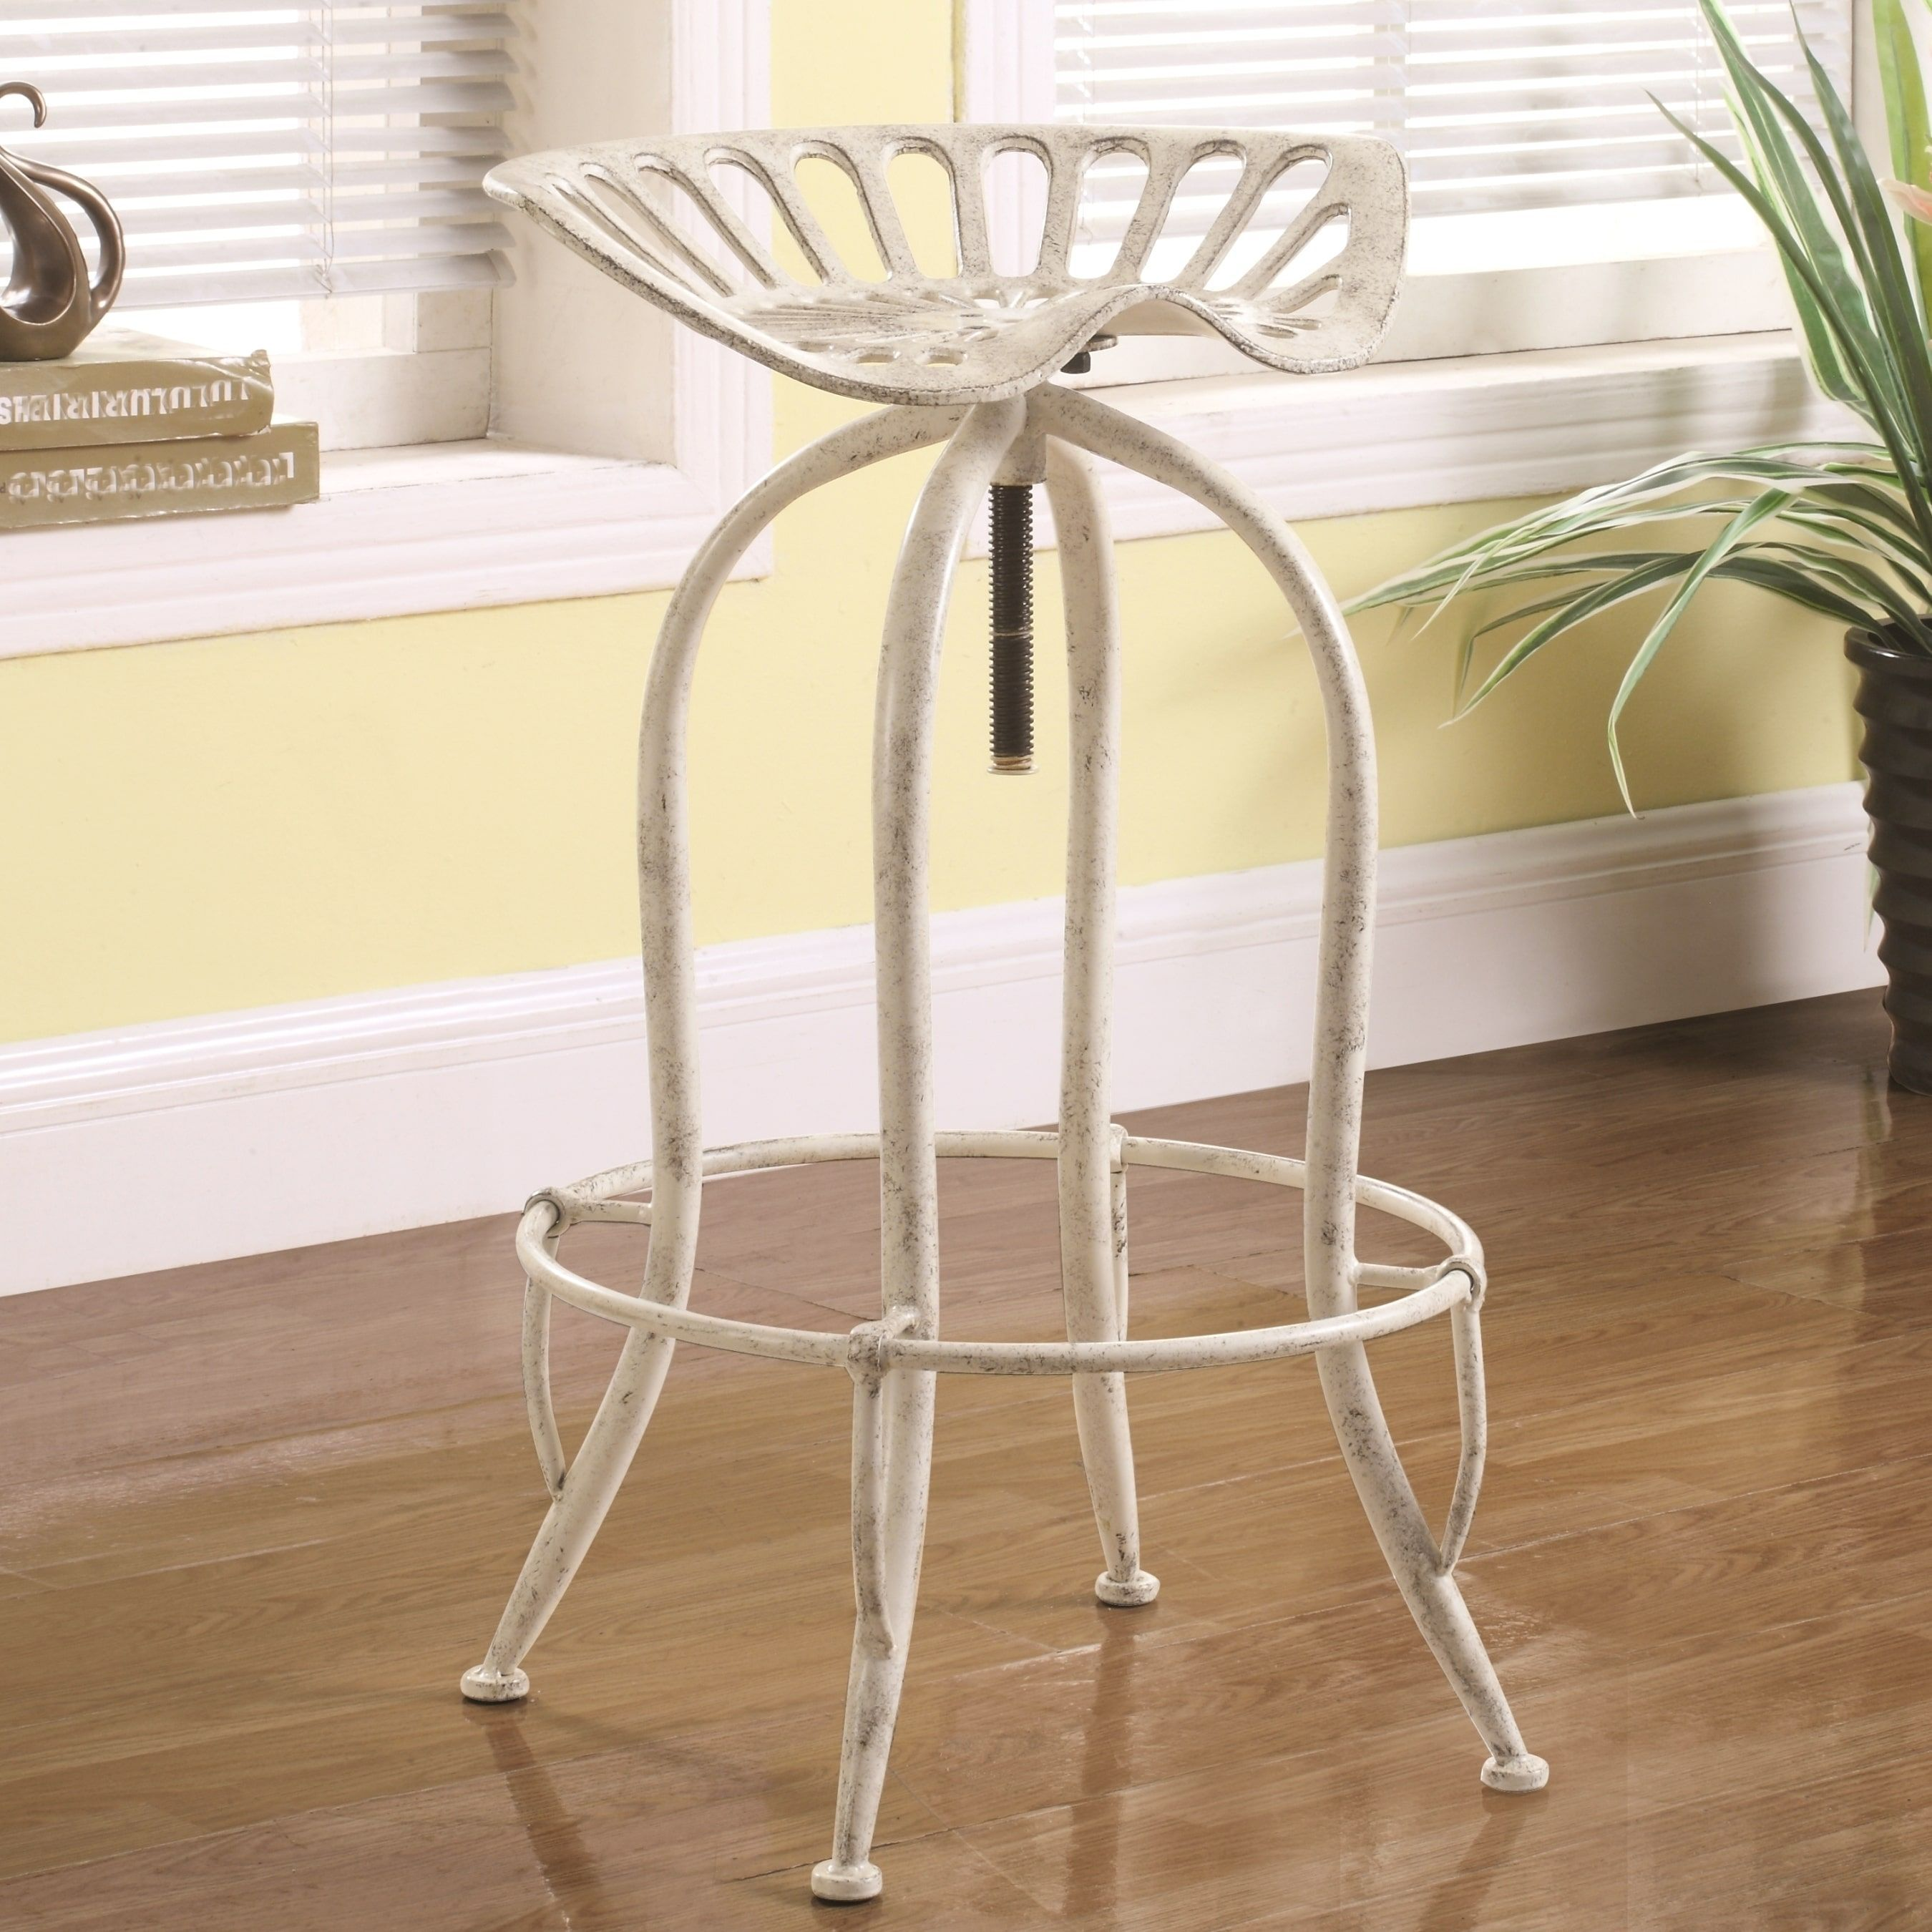 tufted now great on bar stool marshalls things at barstool pin sale gray stools